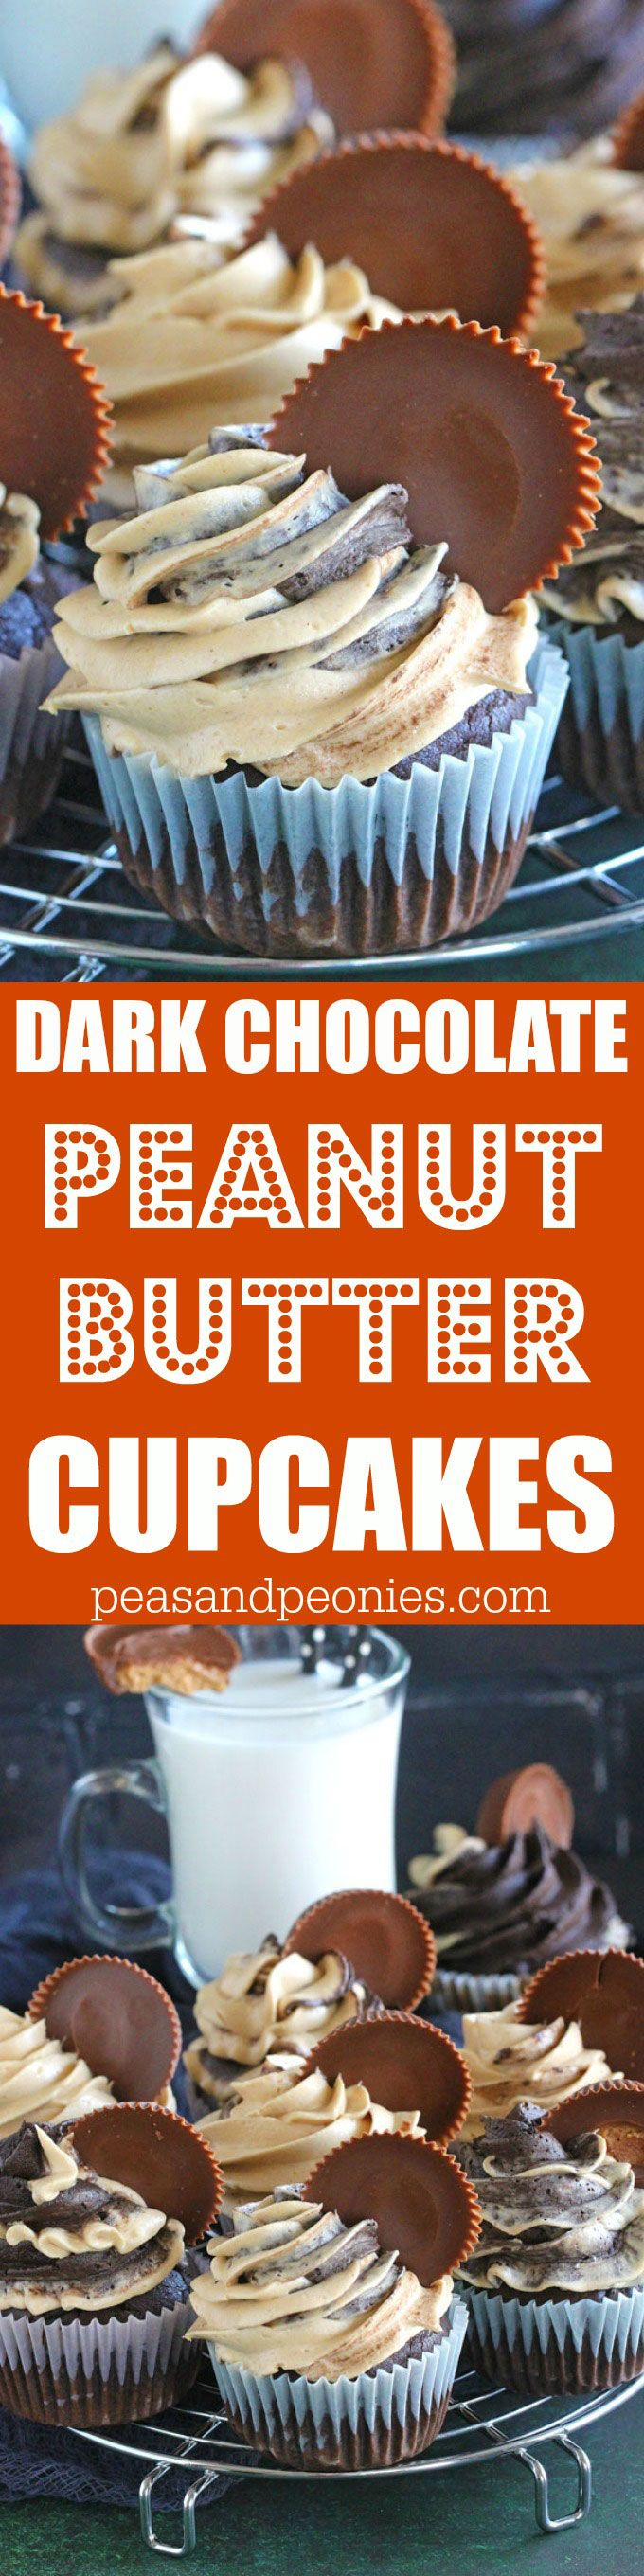 Dark Chocolate Peanut Butter Cupcakes are to die for, a rich dark chocolate peanut butter cupcake is topped with sweet peanut butter buttercream and peanut butter cup. @realcalifmilk #ad